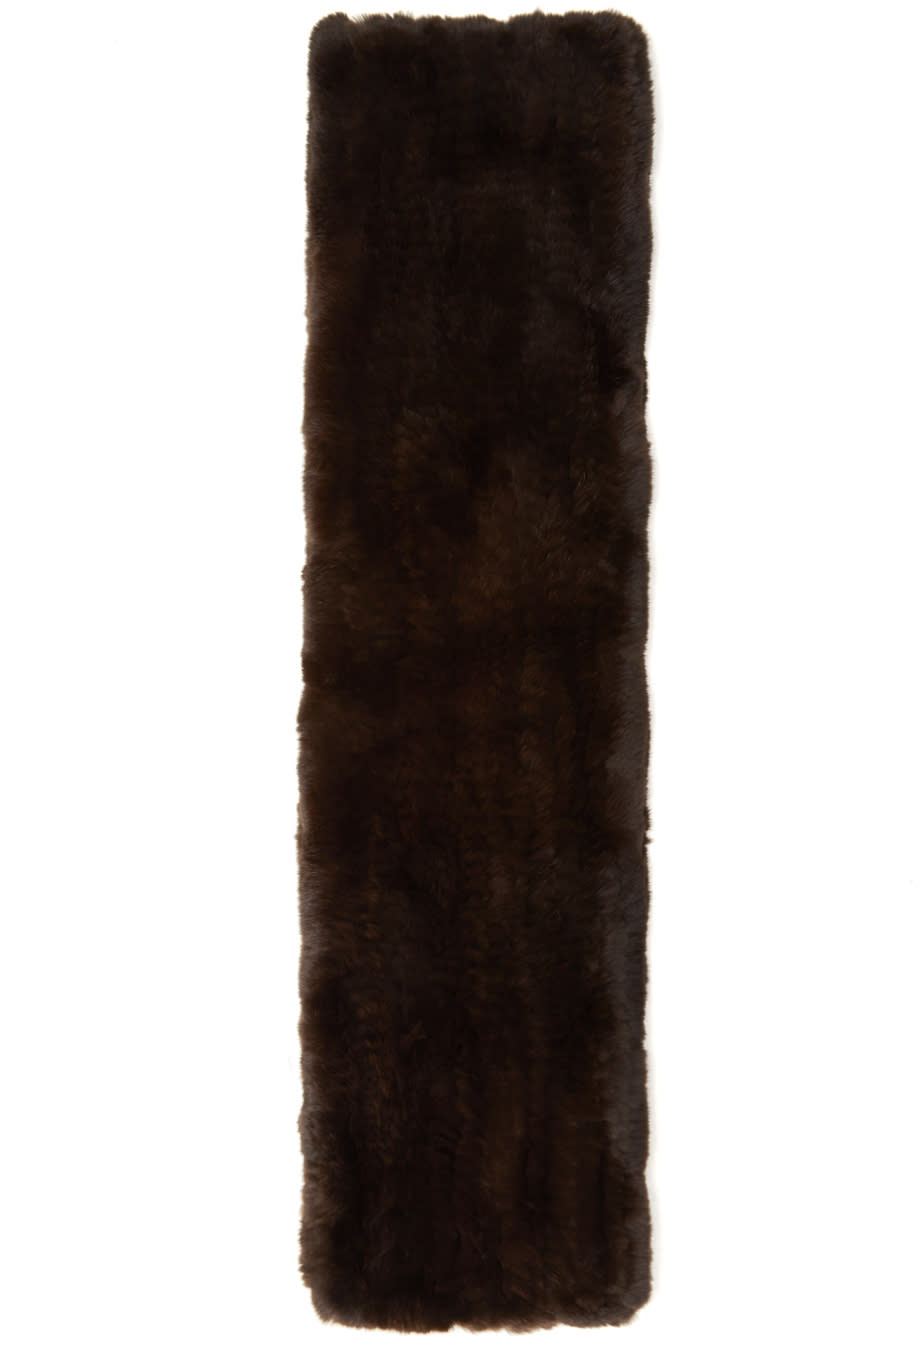 Yves Salomon Brown Knit Fur Scarf